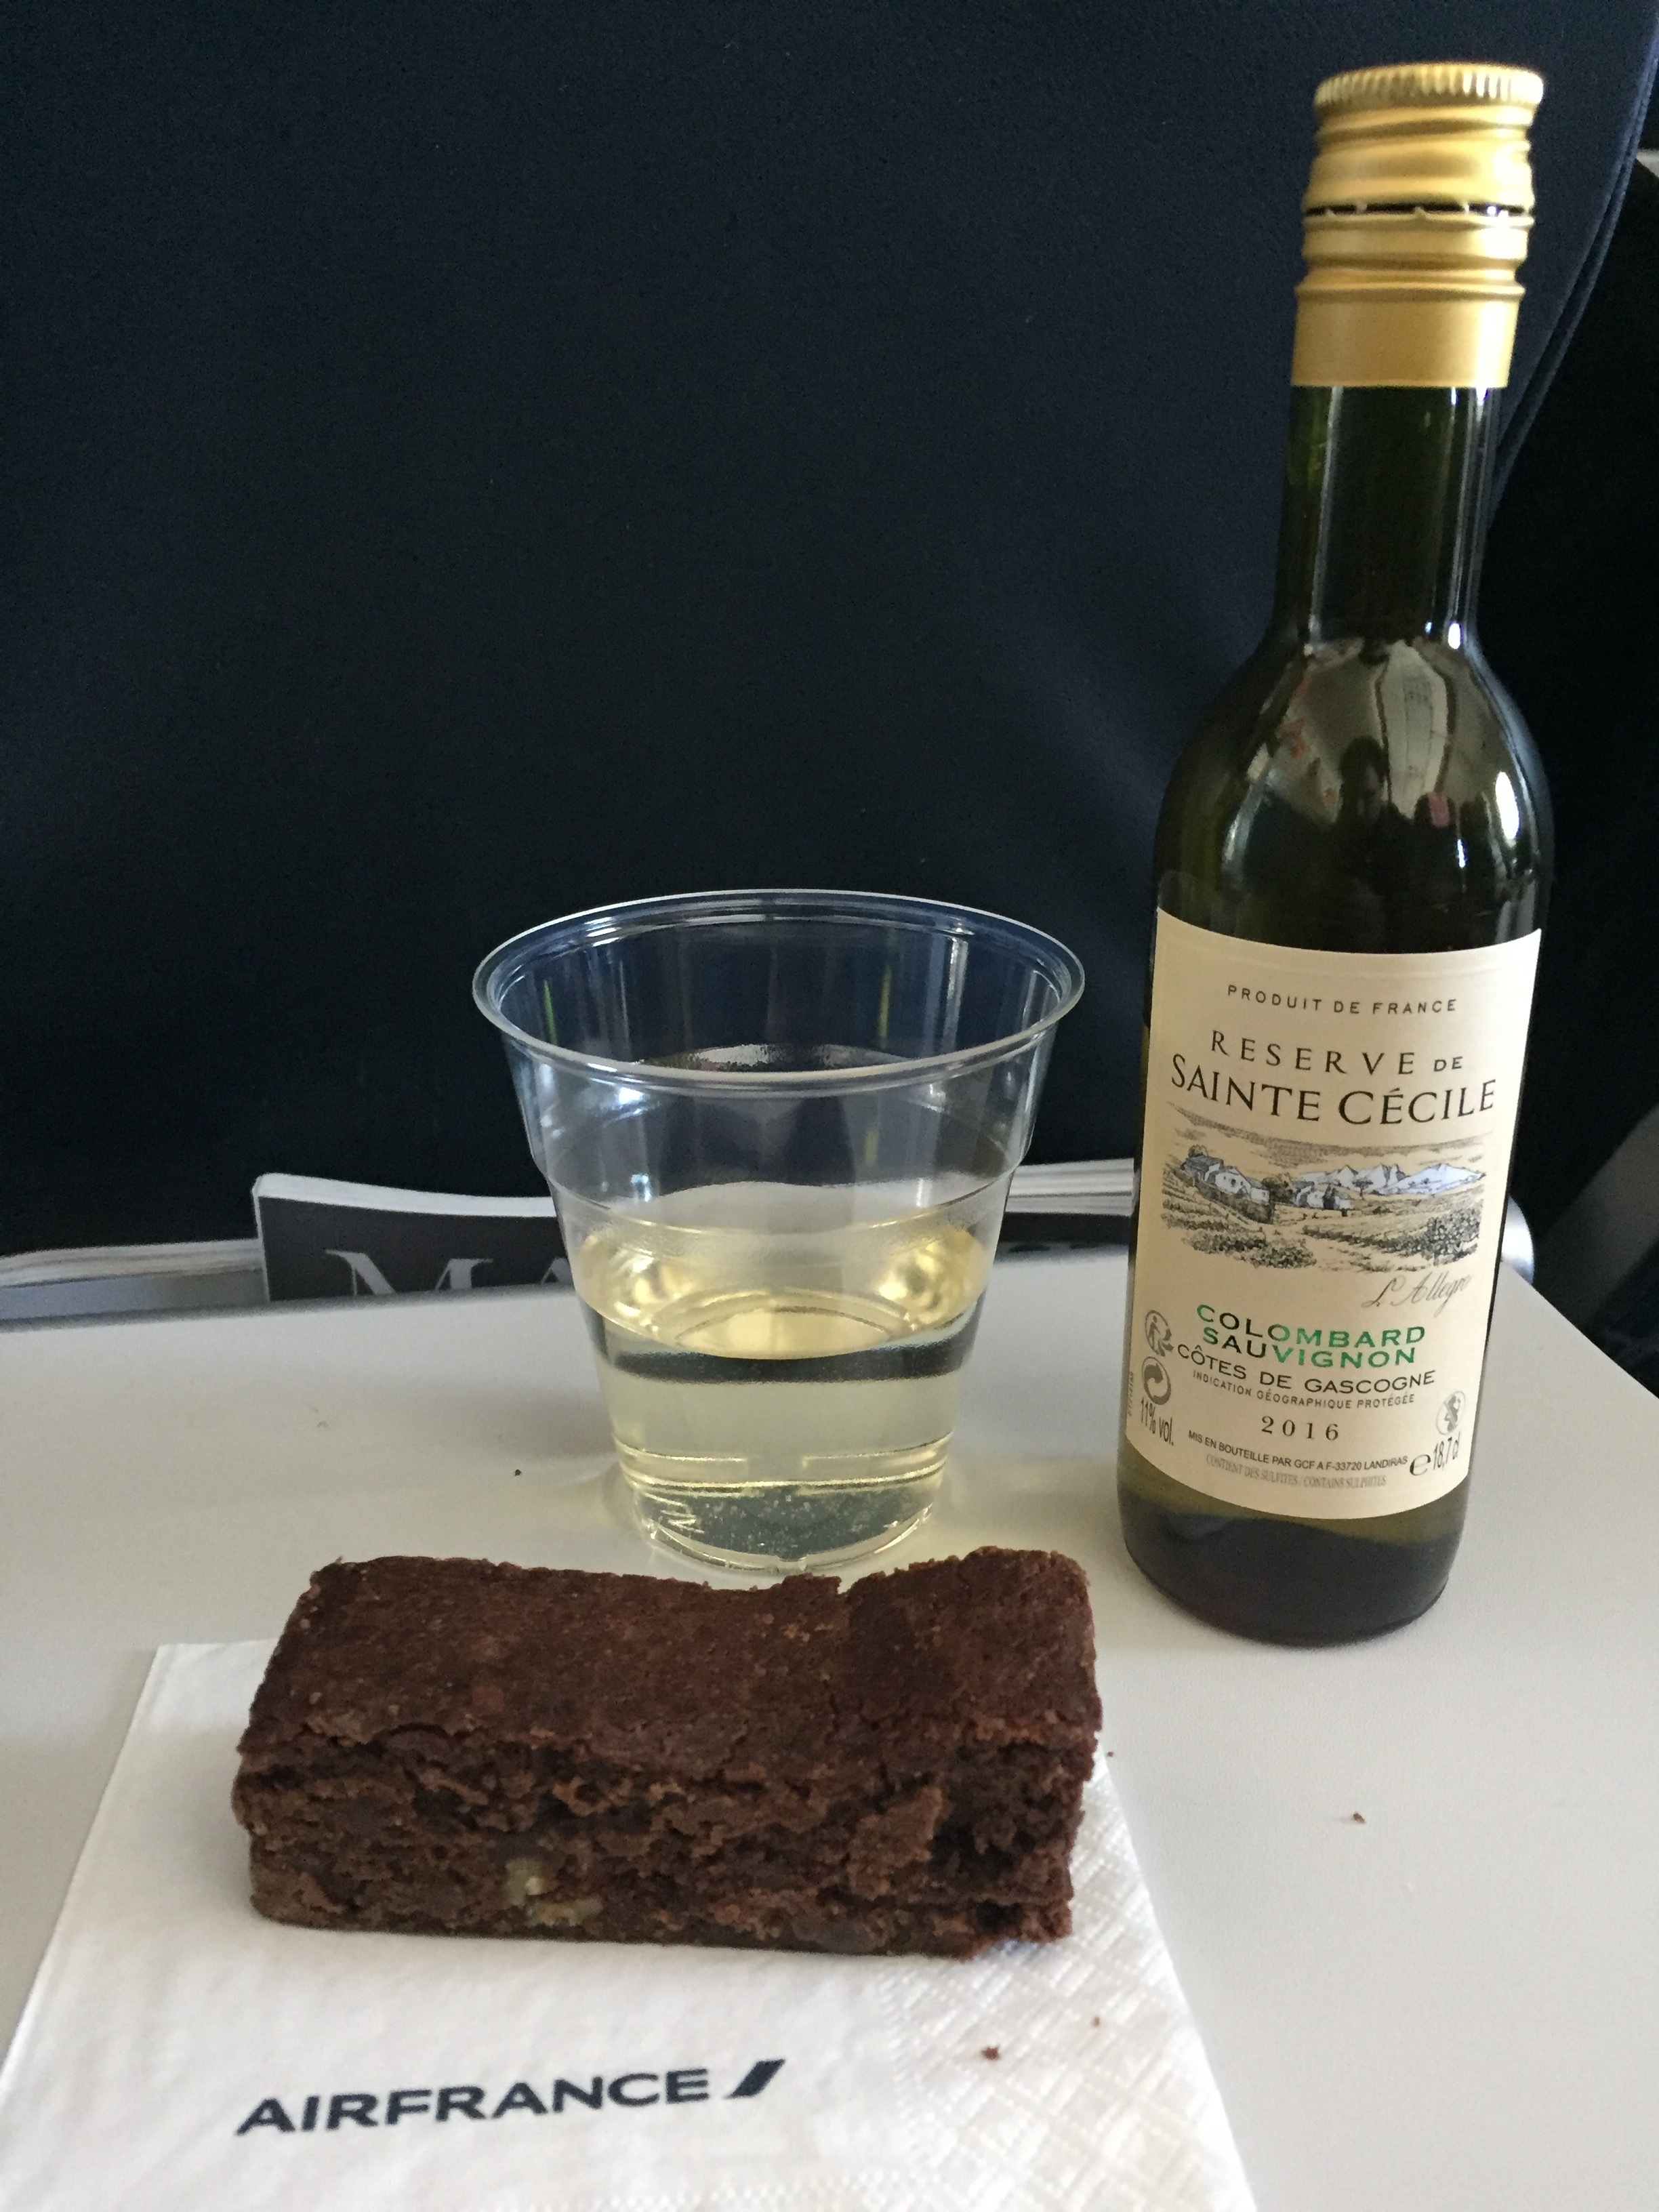 Air France inflight food wine.JPG